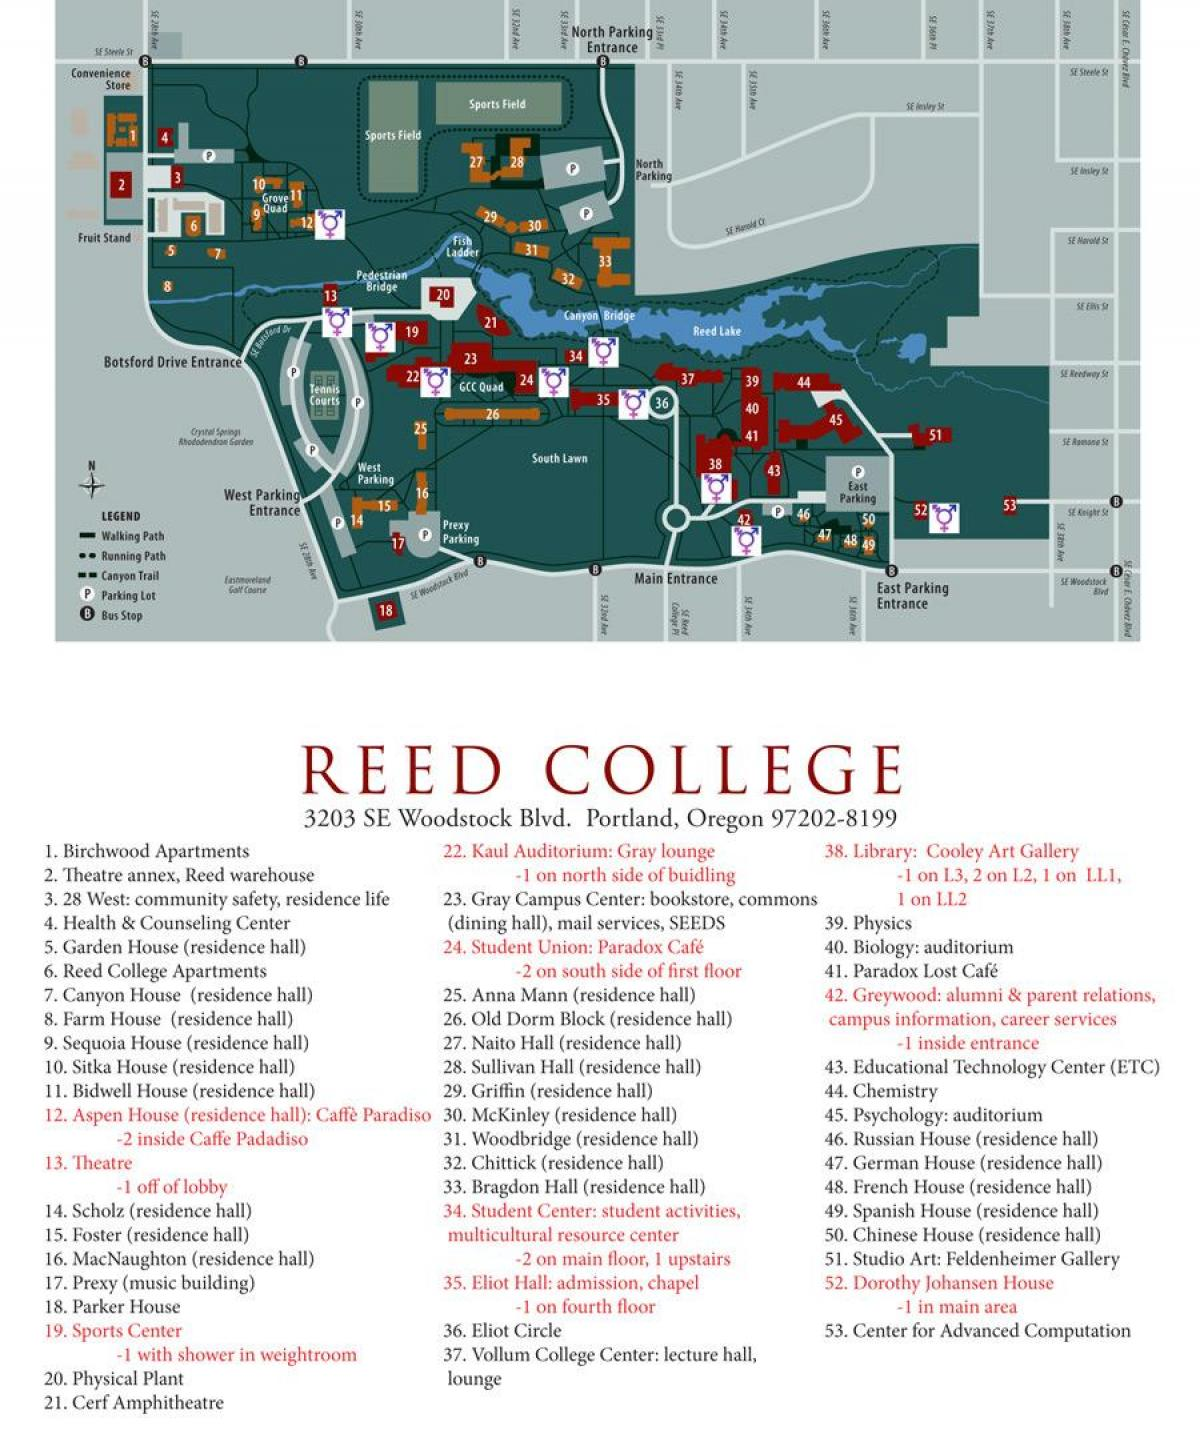 map of reed College